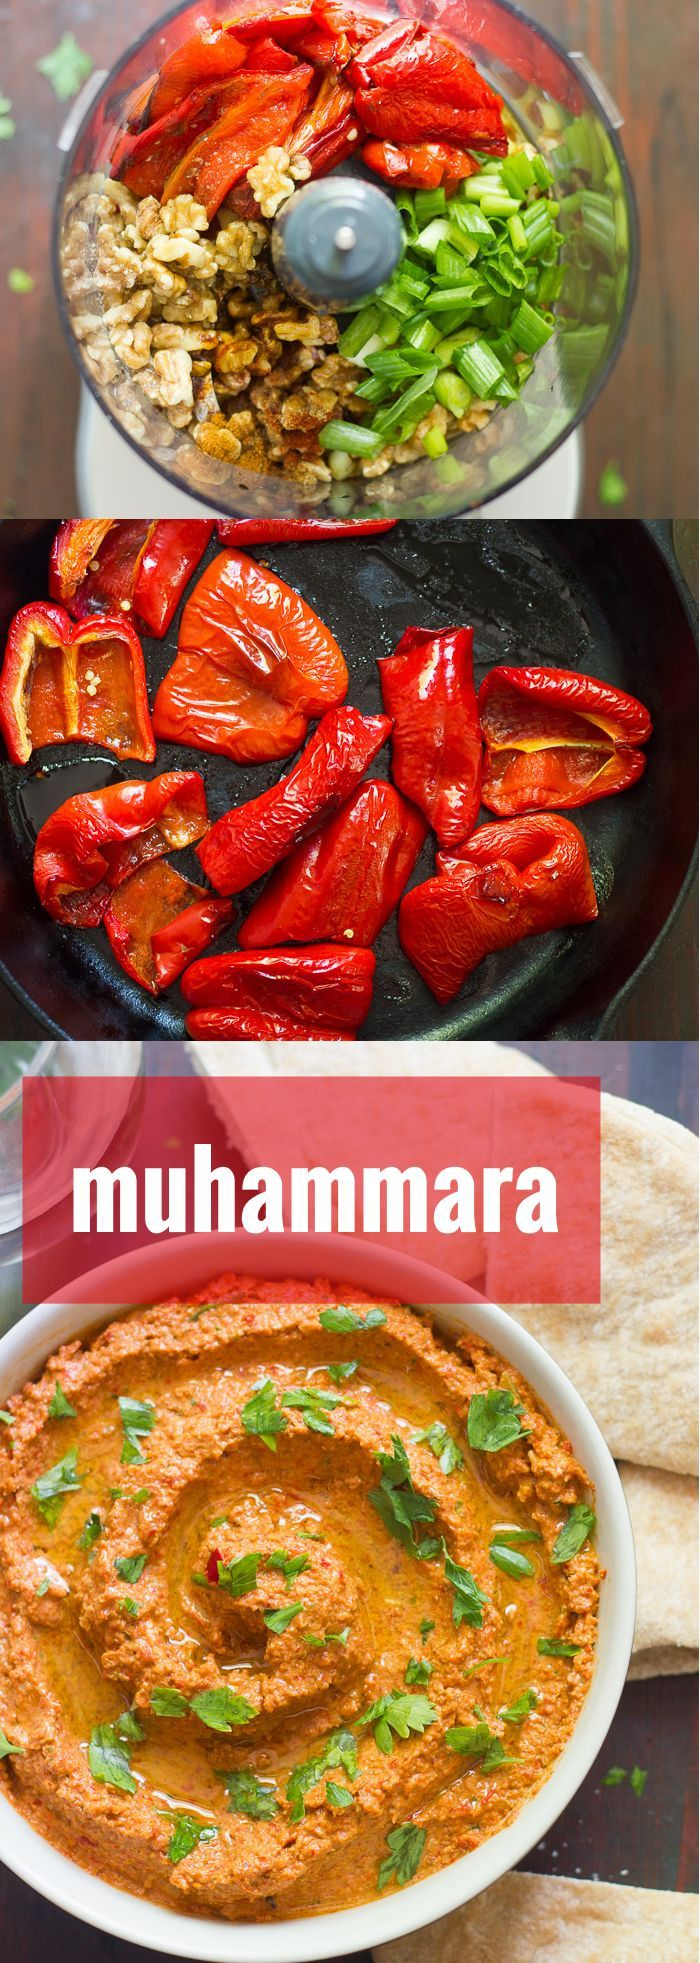 Muhammara (Roasted Red Pepper & Walnut Dip). A smoky sweet mixture of roasted red peppers, walnuts and spices goes into making this luscious muhammara.